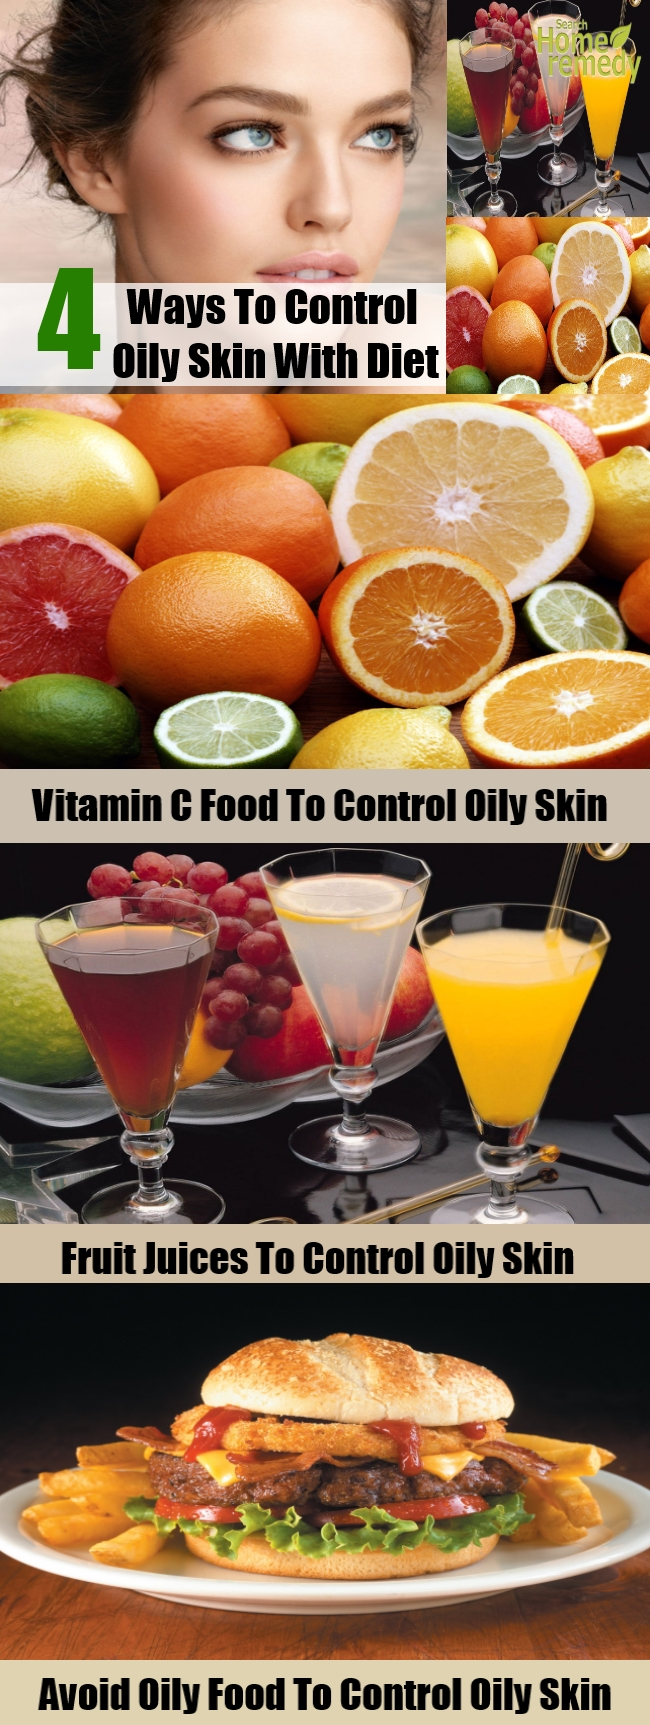 How To Control Oily Skin With Diet1